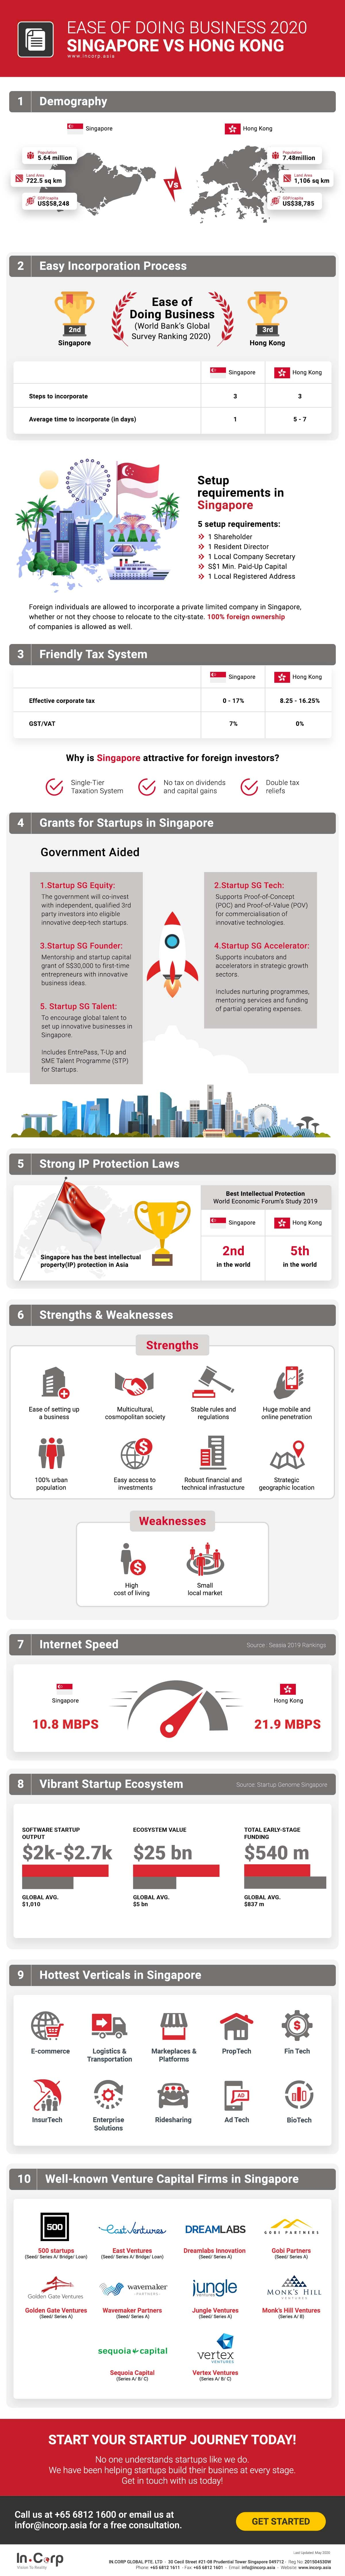 Singapore vs Hong Kong- Which Market is Best for Business?